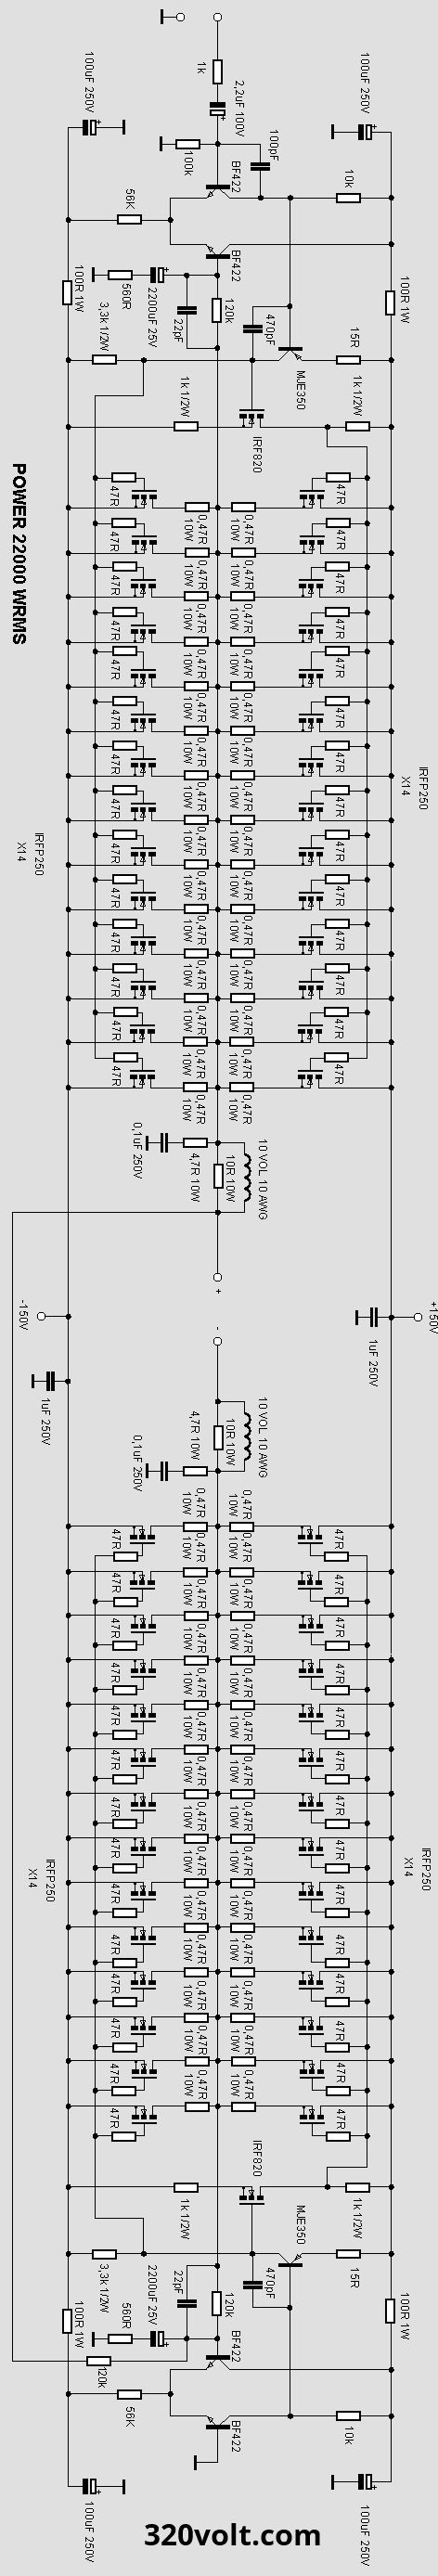 wrg 0912 1000 watts amplifier circuit diagrams [ 472 x 2776 Pixel ]